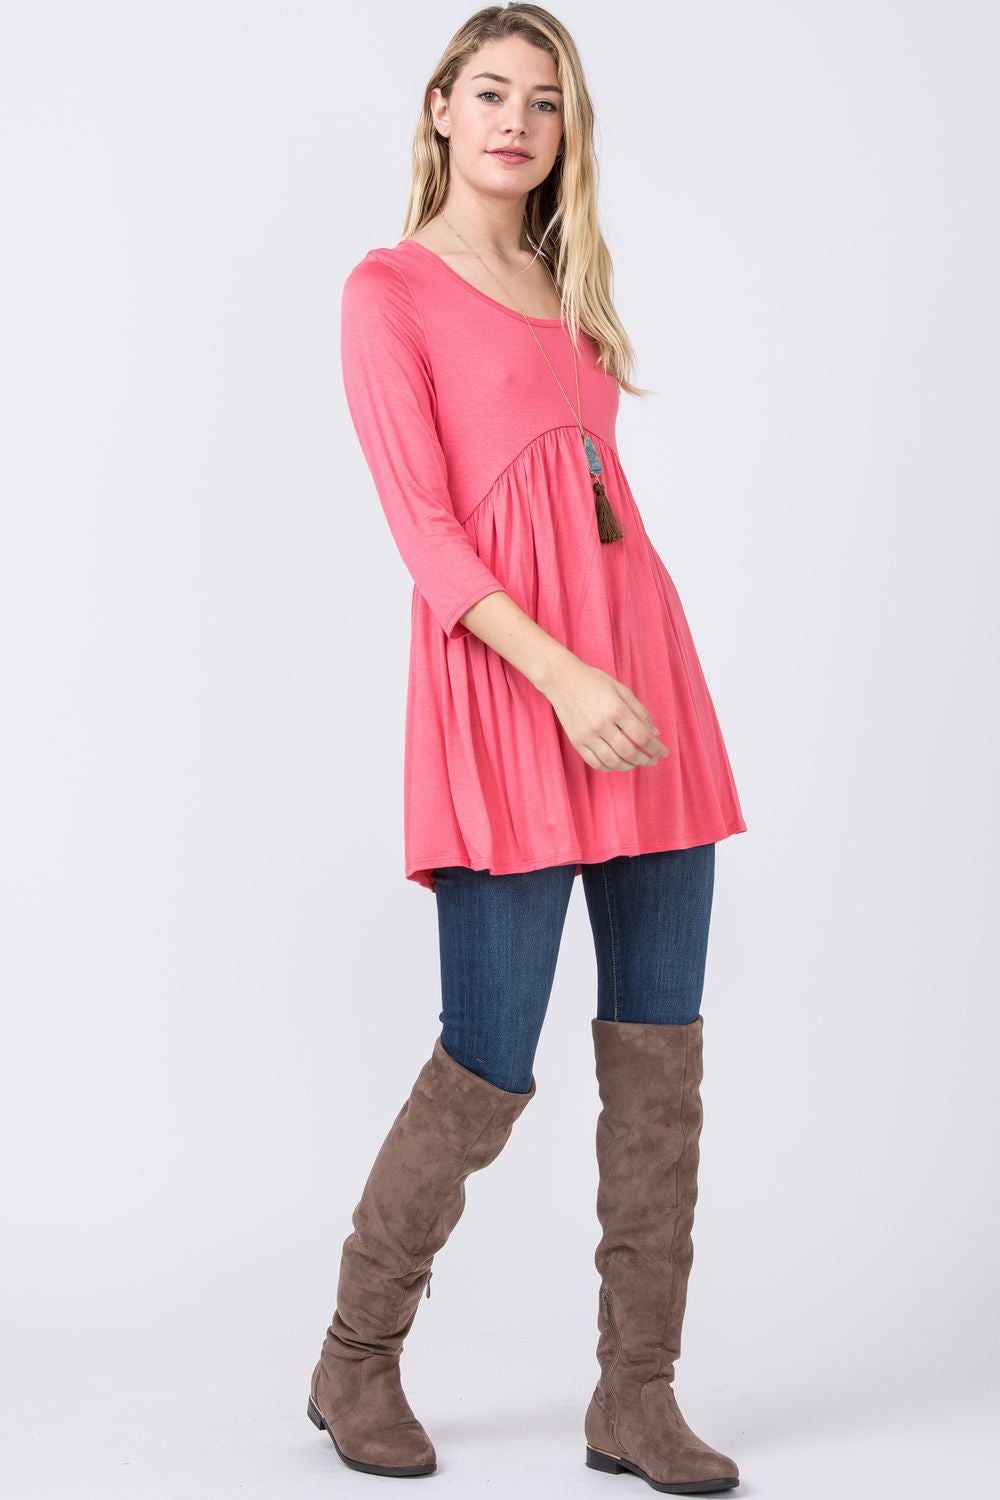 Hot Pink Baby Doll Tunic